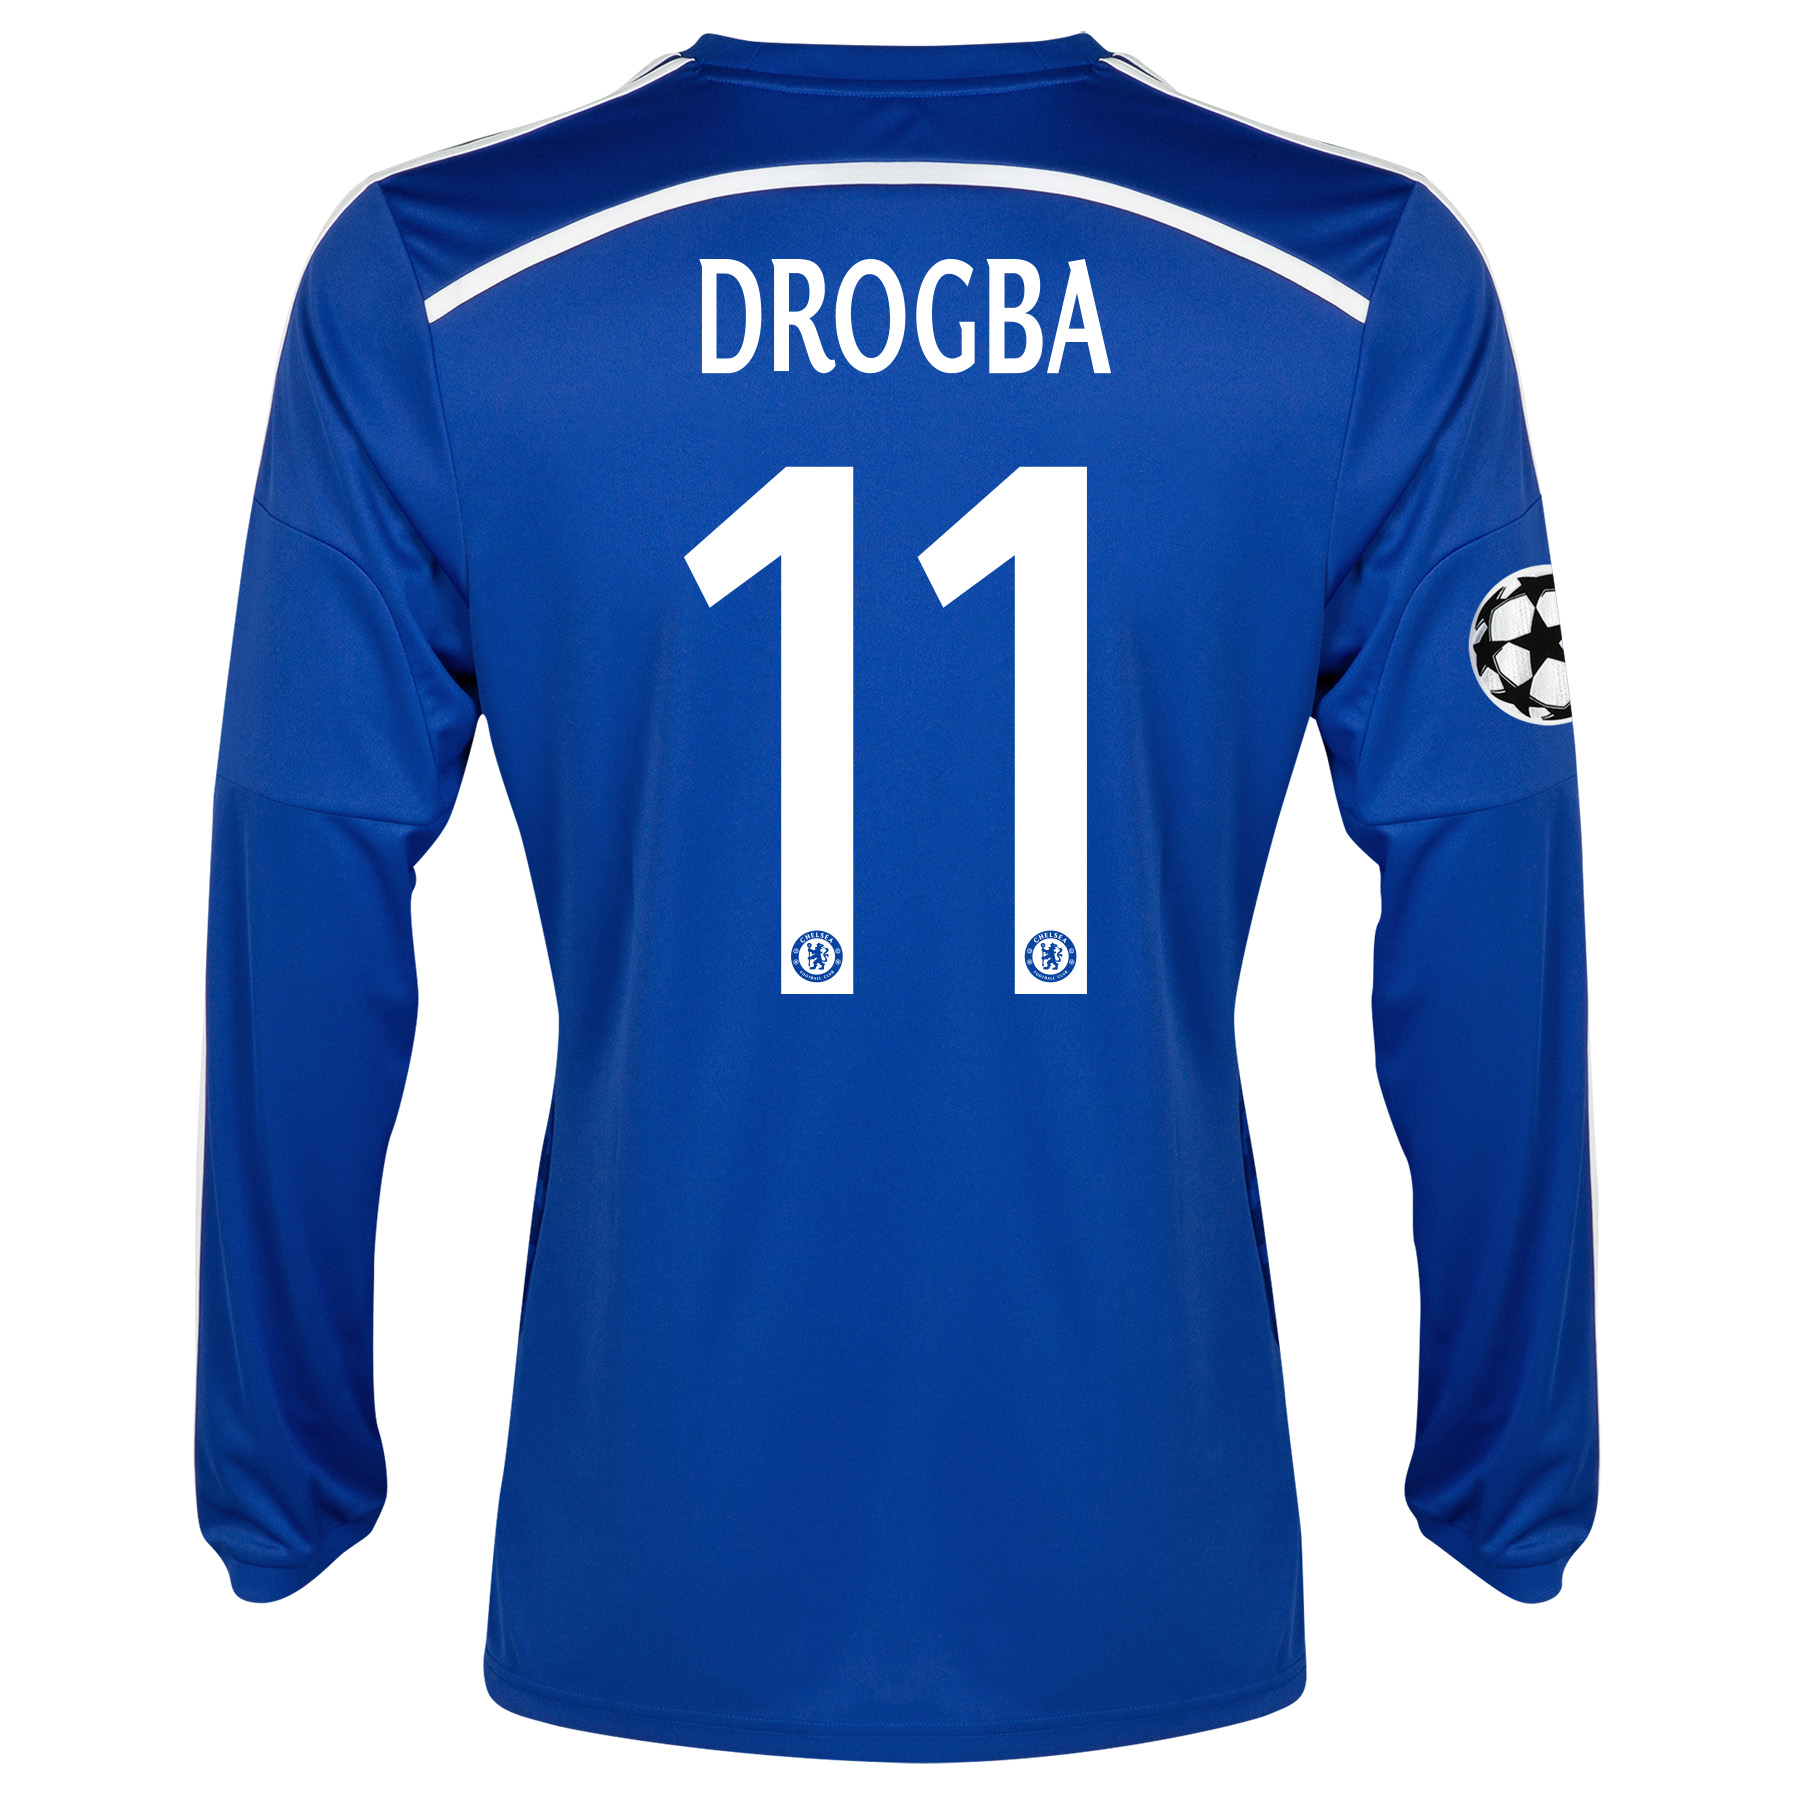 Chelsea Uefa Champions League Home Shirt 2014/15 - Long Sleeve - Kids with Drogba 11 printing